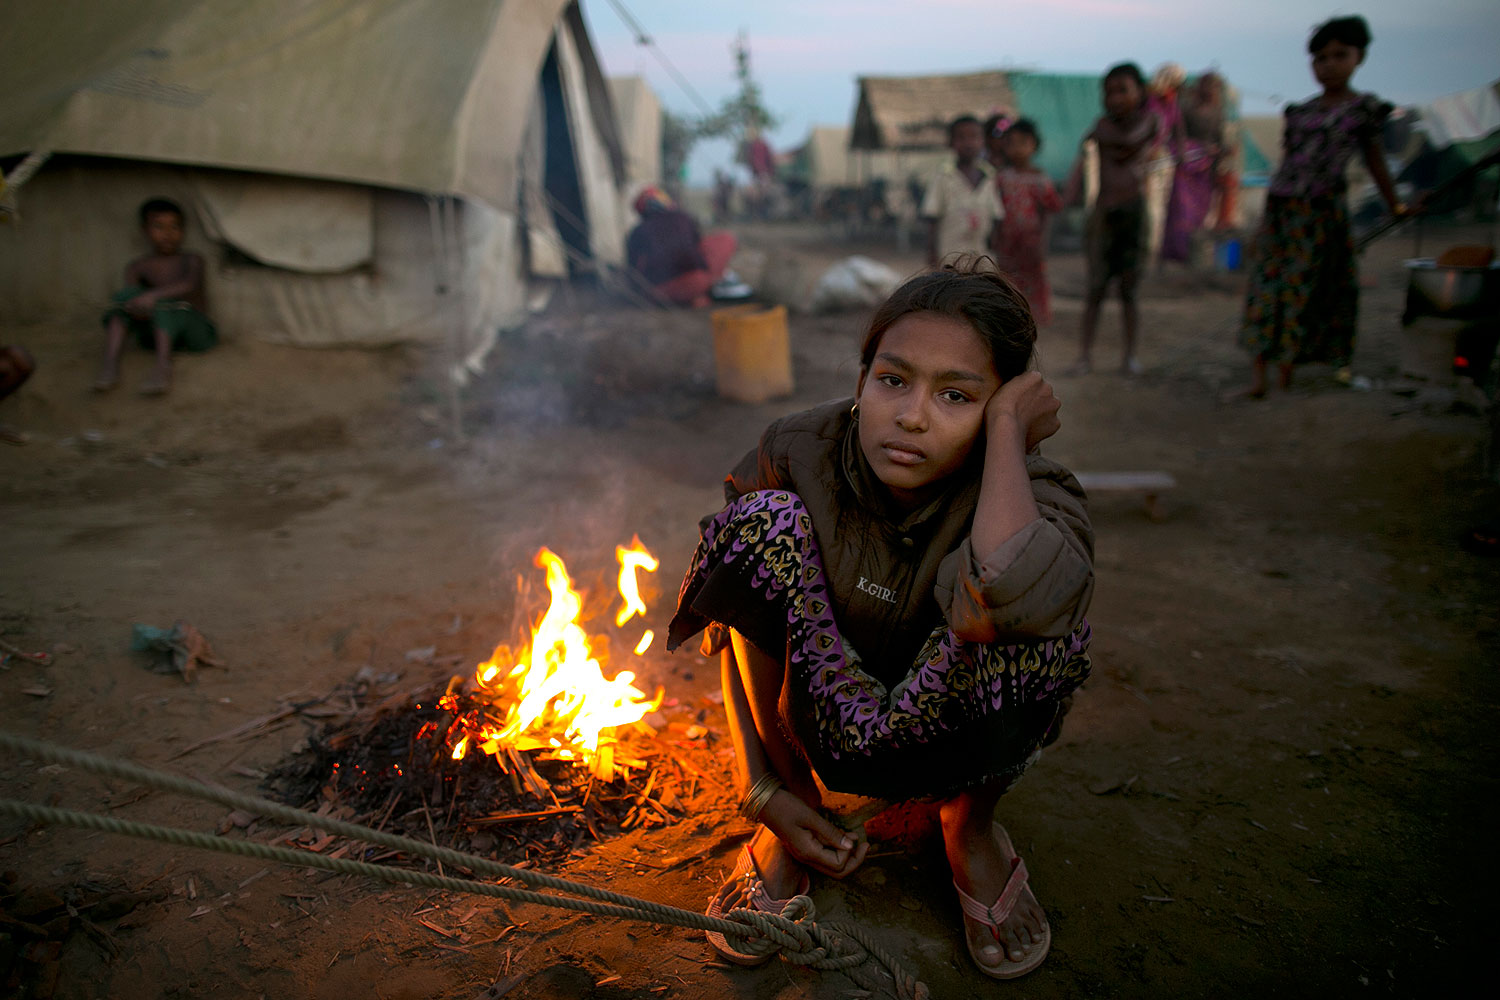 A Rohingya woman sits by a fire at a crowded internally displaced persons (IDP) camp Nov. 23, 2012 on the outskirts of Sittwe, Burma